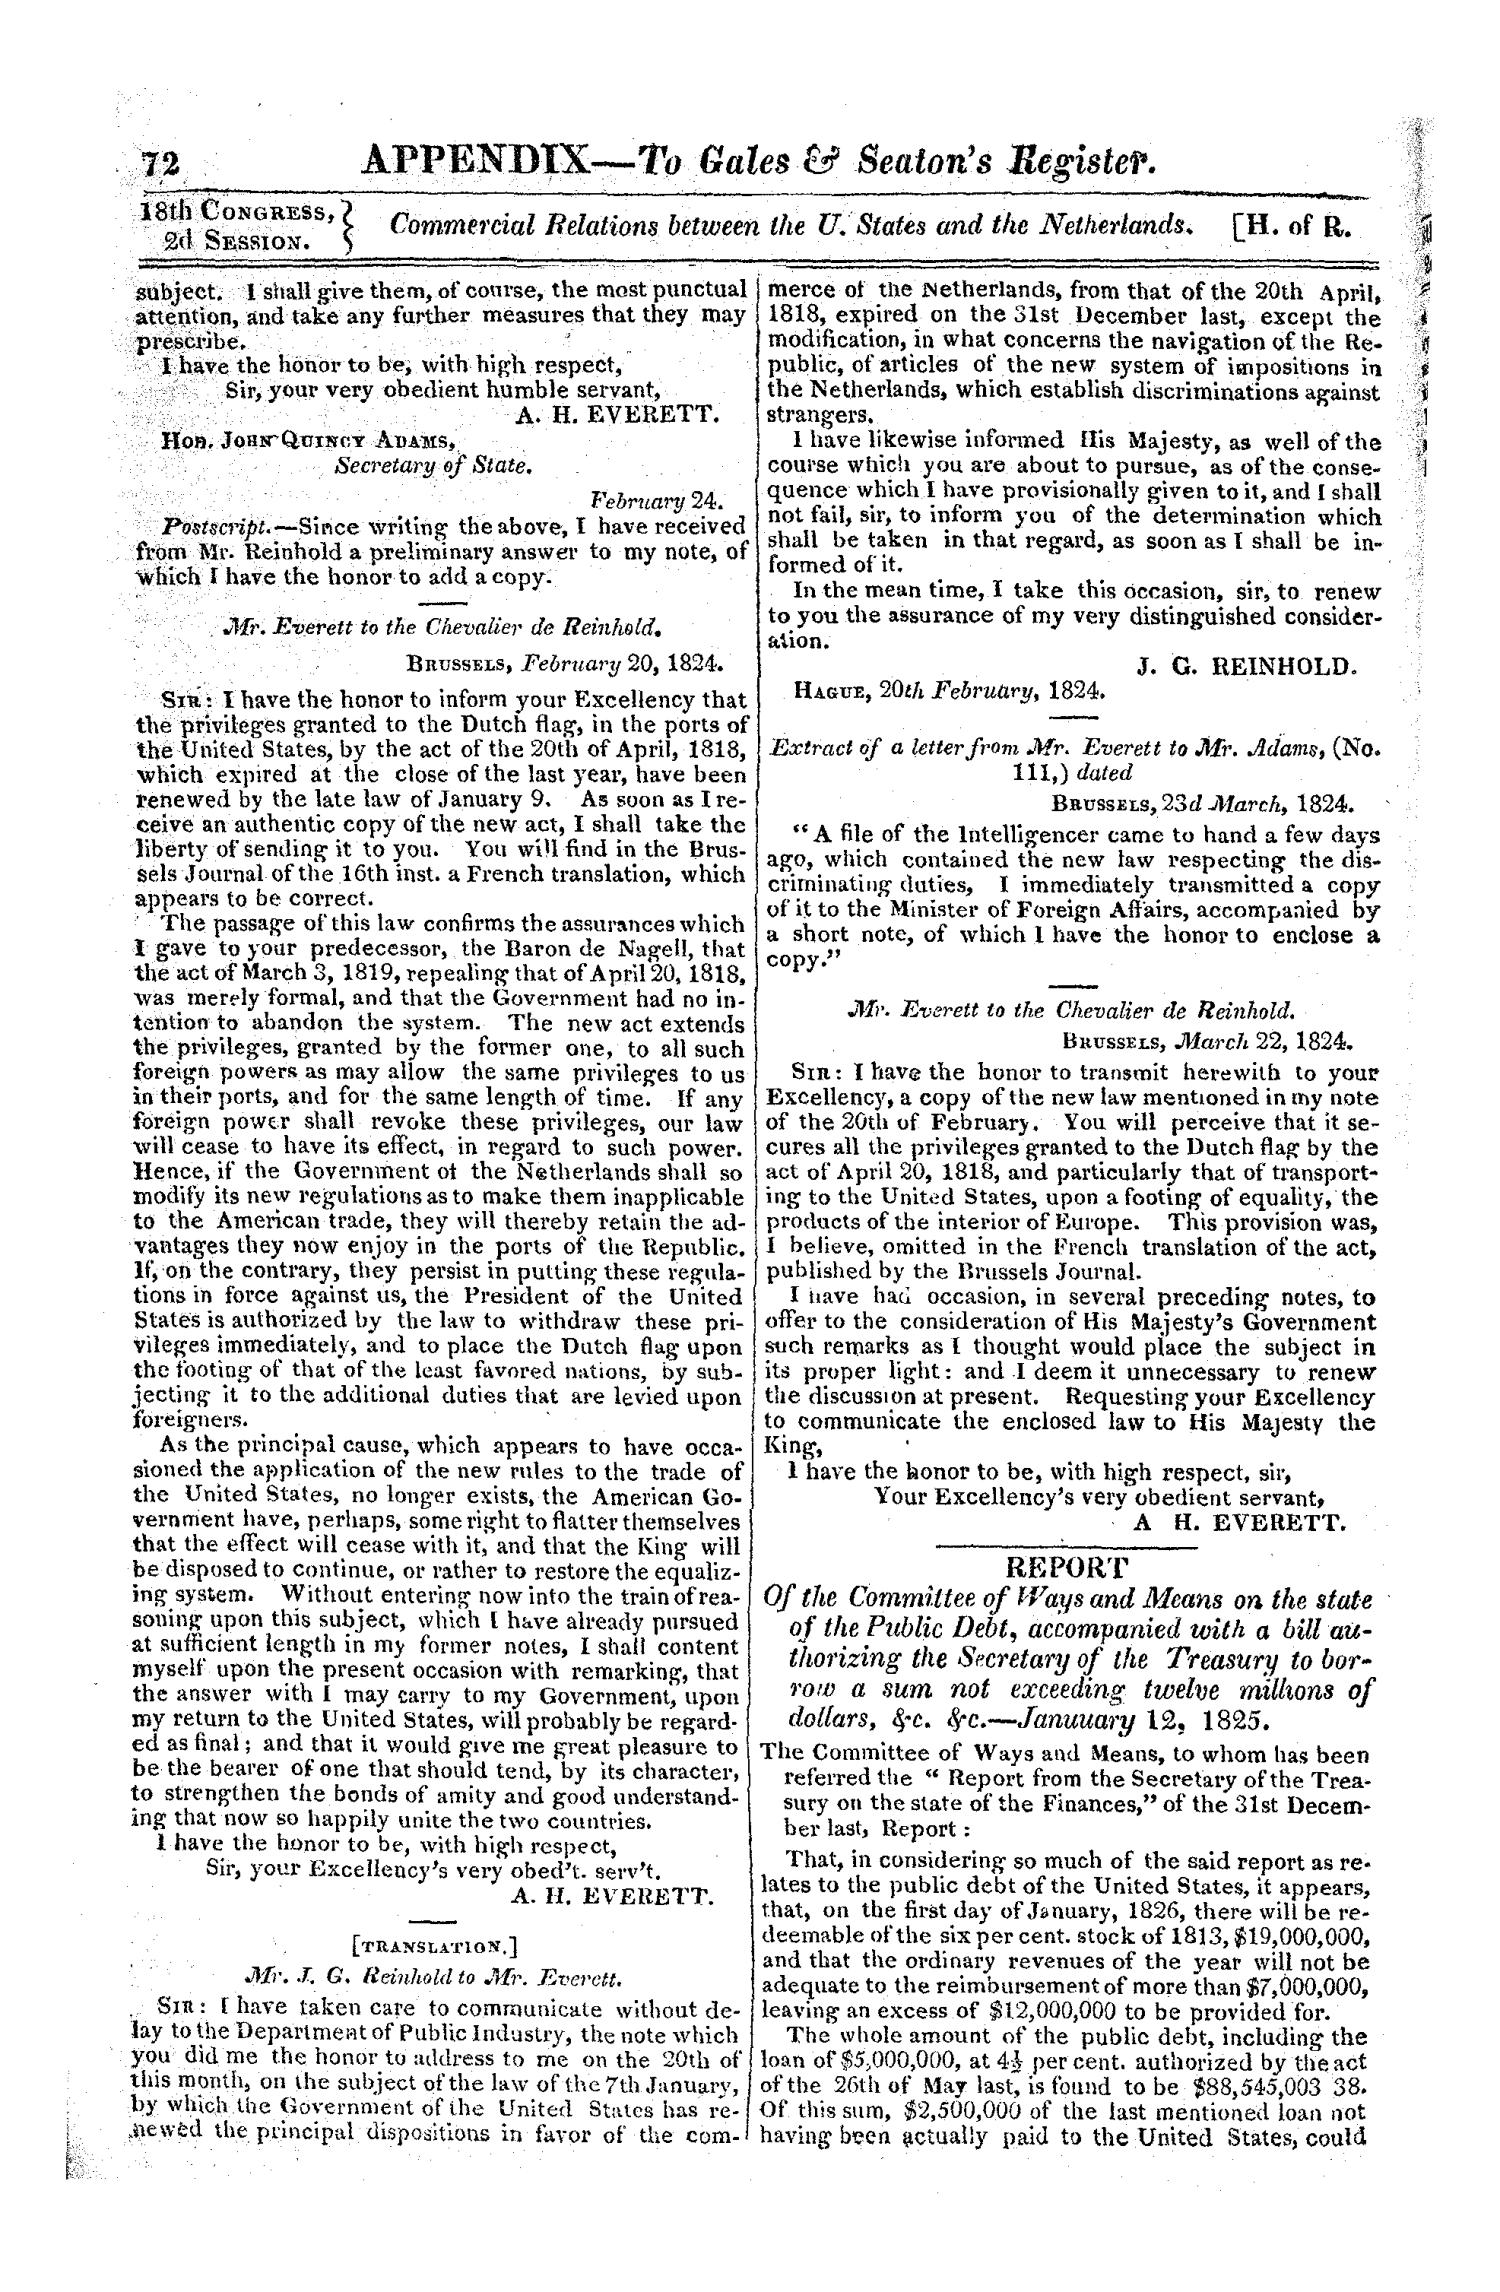 Register of Debates in Congress, Comprising the Leading Debates and Incidents of the Second Session of the Eighteenth Congress                                                                                                      72